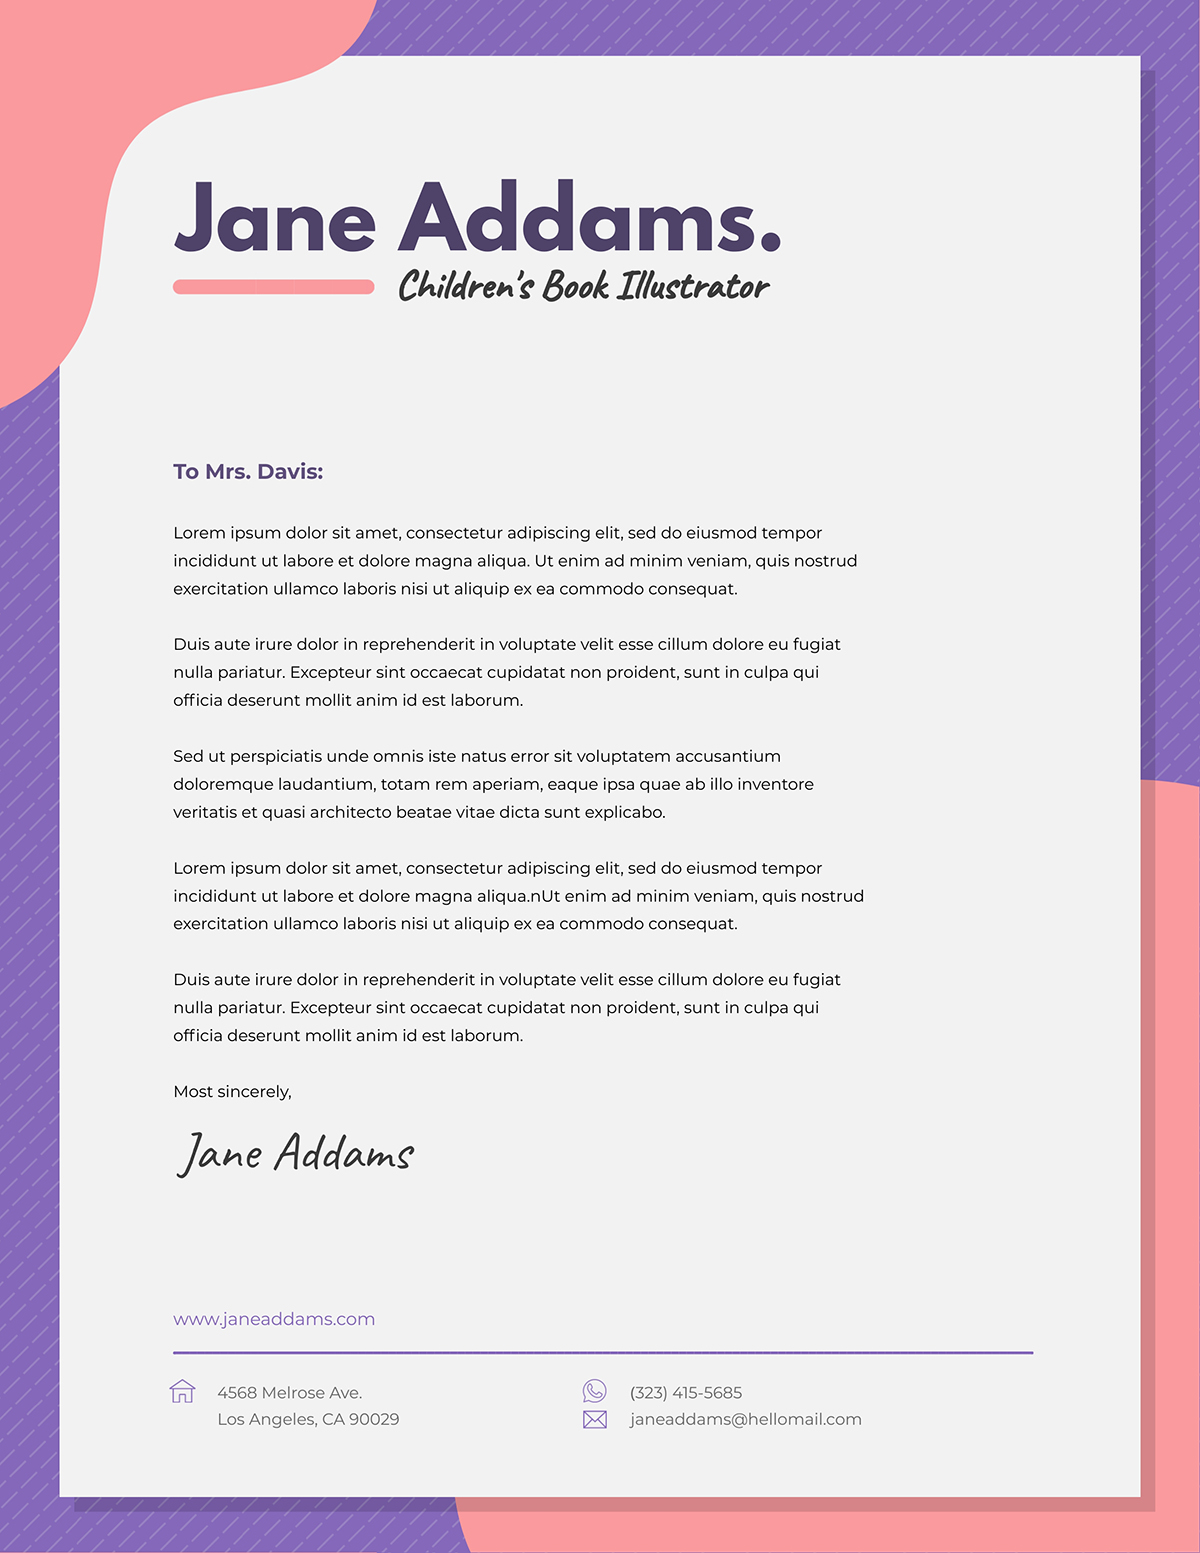 Pink and purple business letter template available in Visme.